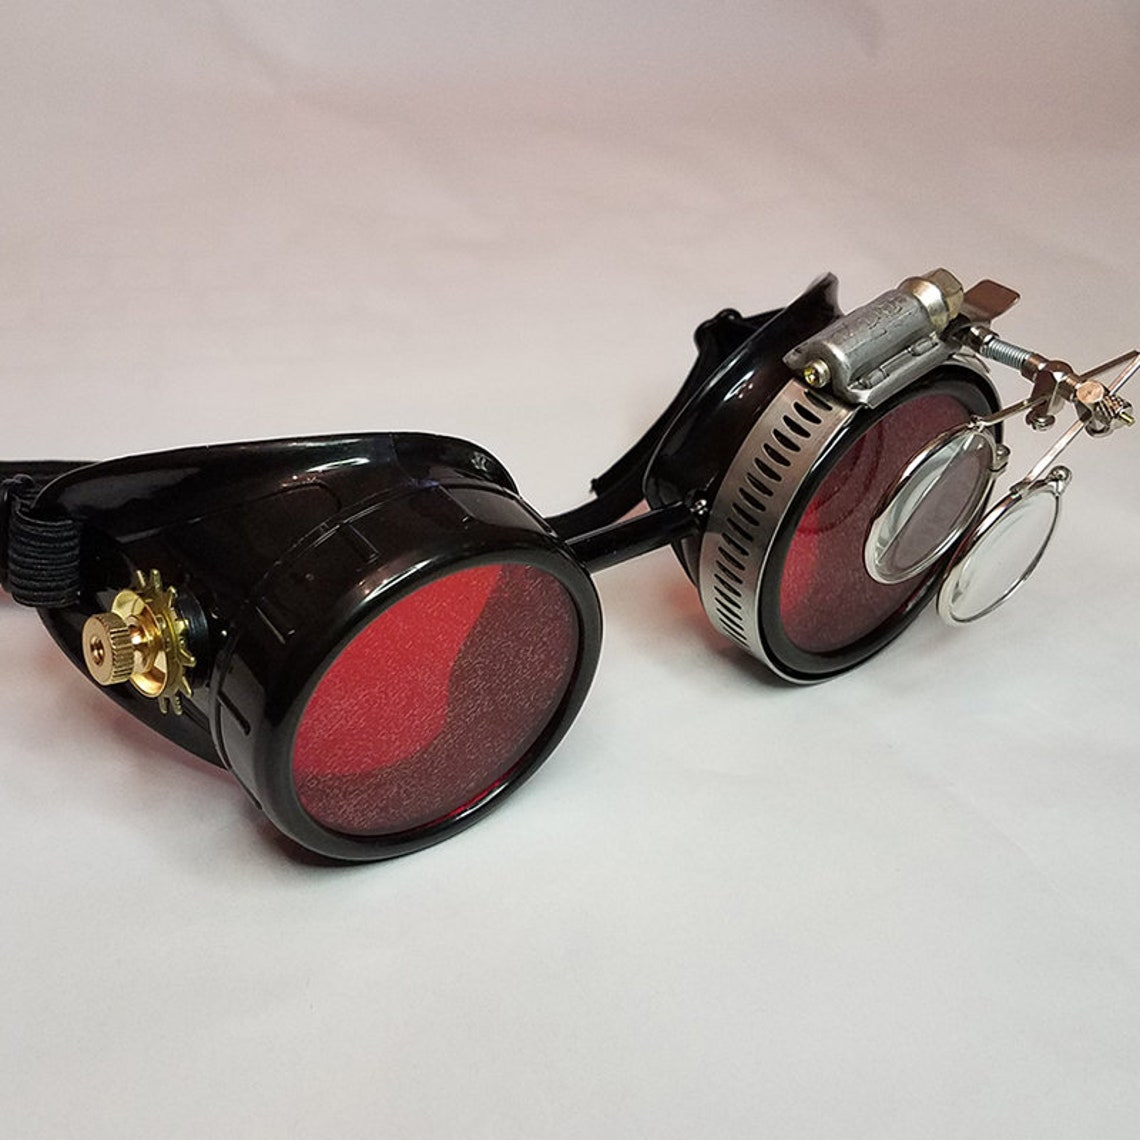 Black Victorian Steampunk Gothic Goggles with Red Lenses Brass Accents and Magnifying Loupes - Vampire Cyber Rave Optic-Conductors